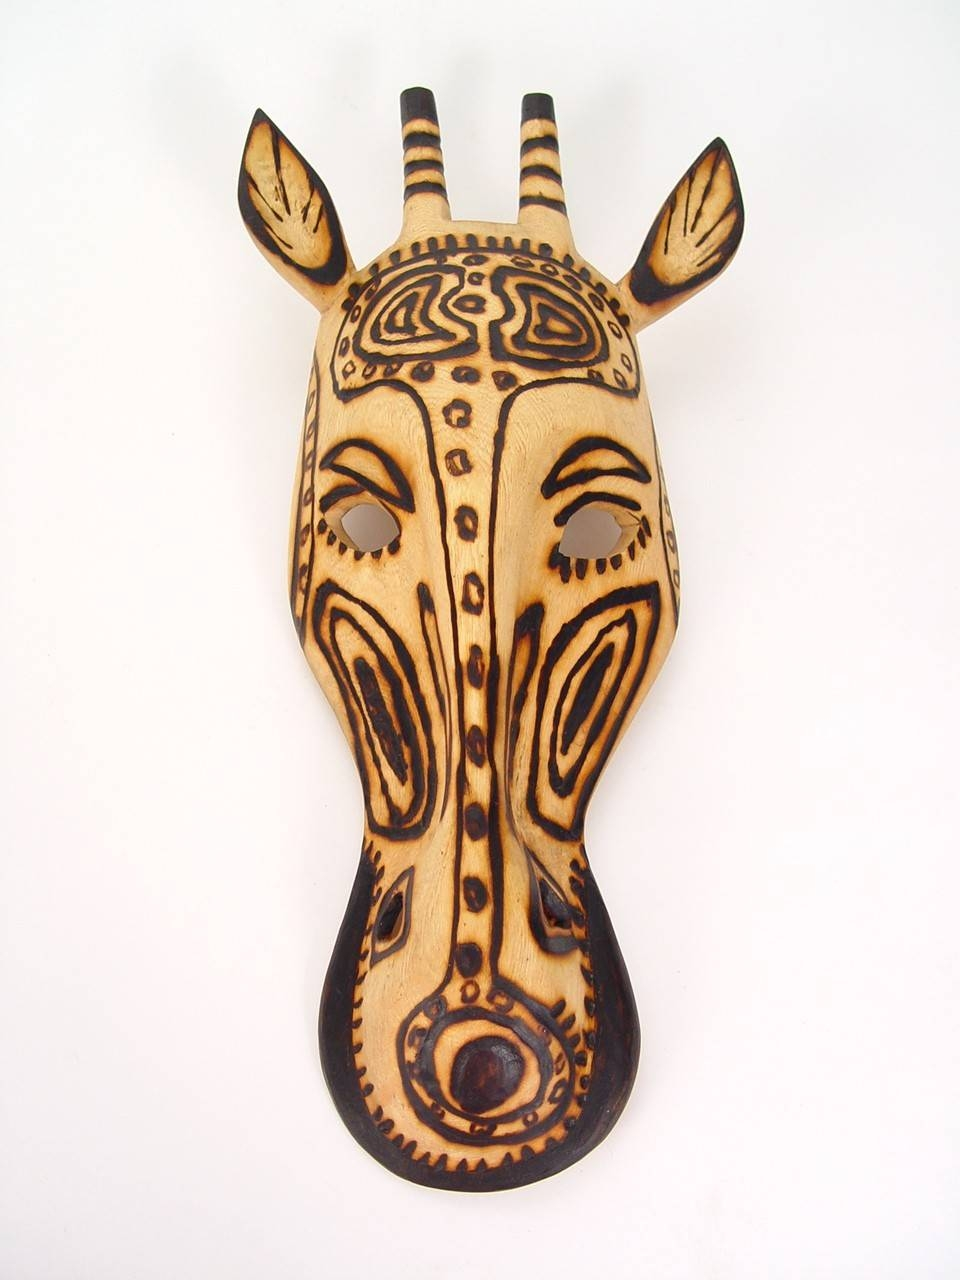 Handmade Wall Masks| Metal Wall Art | Wooden Giraffe Mask For Current Giraffe Metal Wall Art (View 15 of 20)